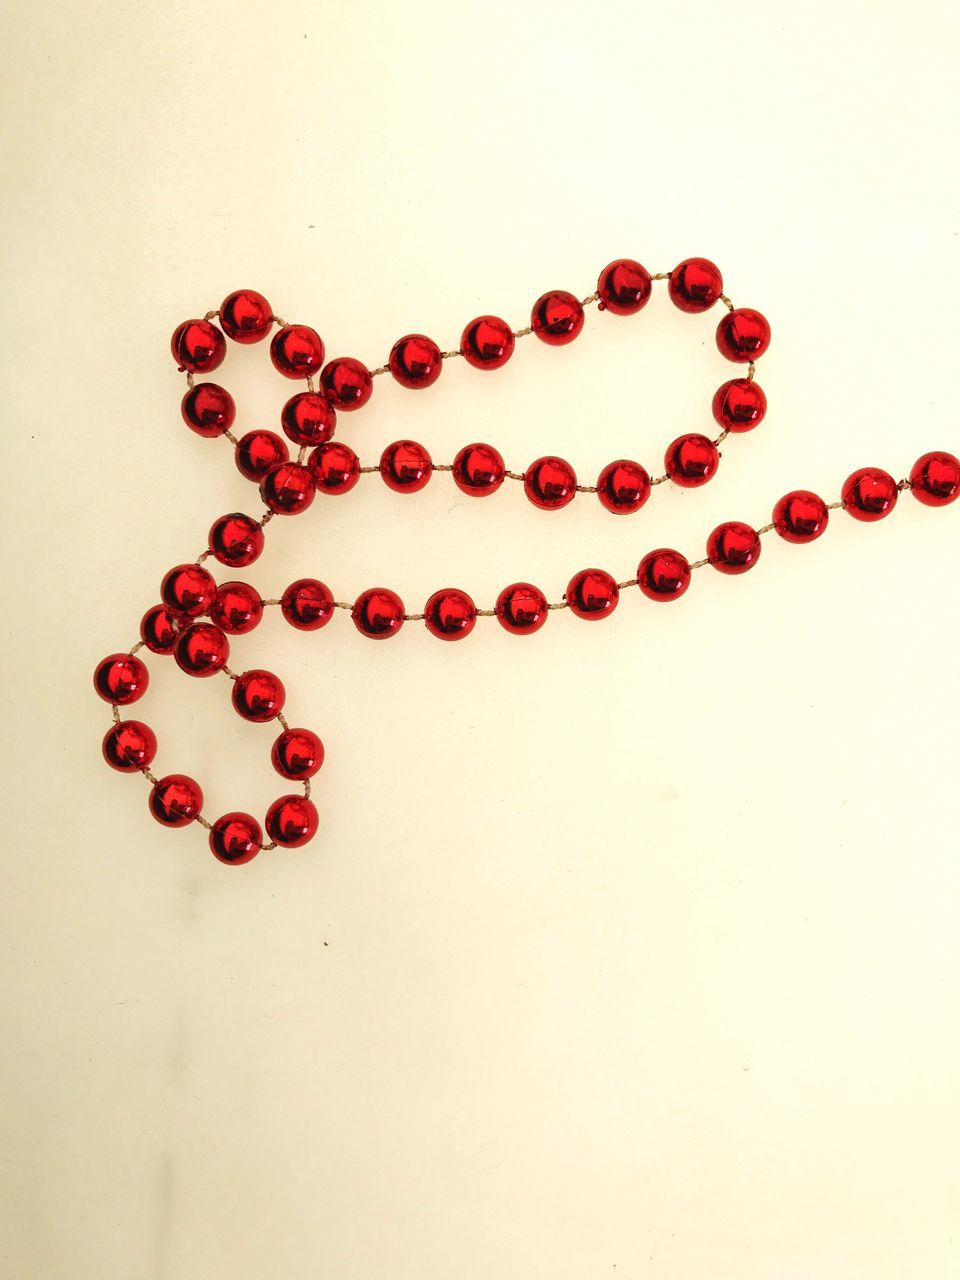 Necklace Beads Red Close-up White Background Christmas Decoration No People Studio Shot